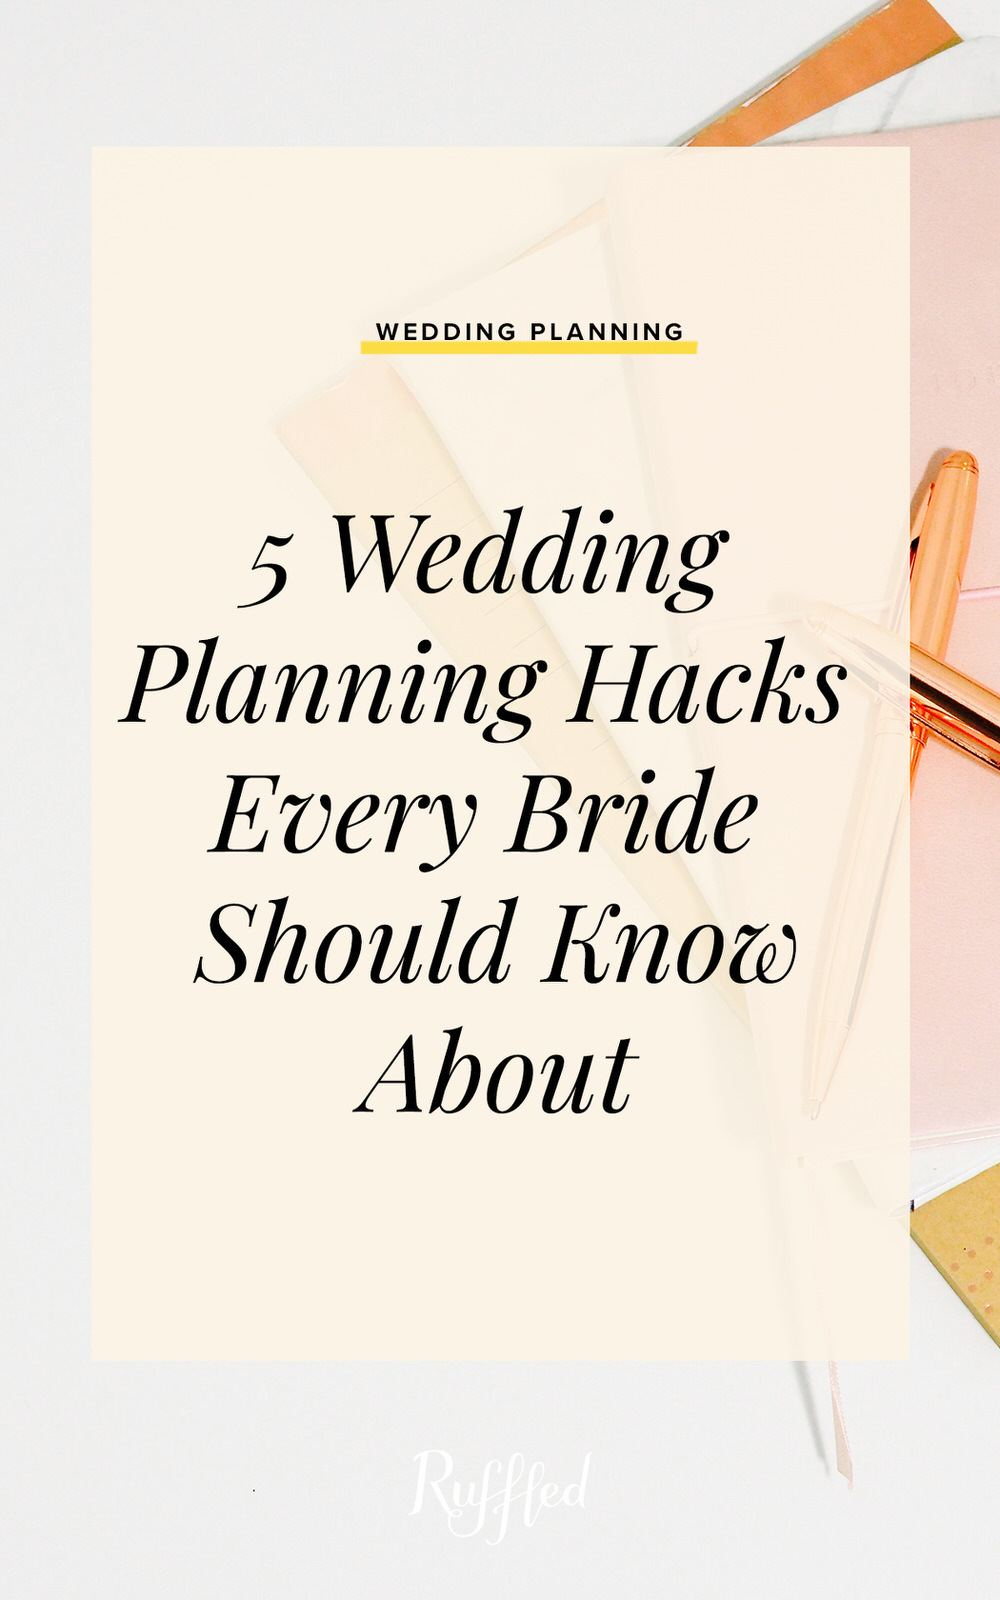 5 Wedding Planning Hacks Every Bride Should Know...